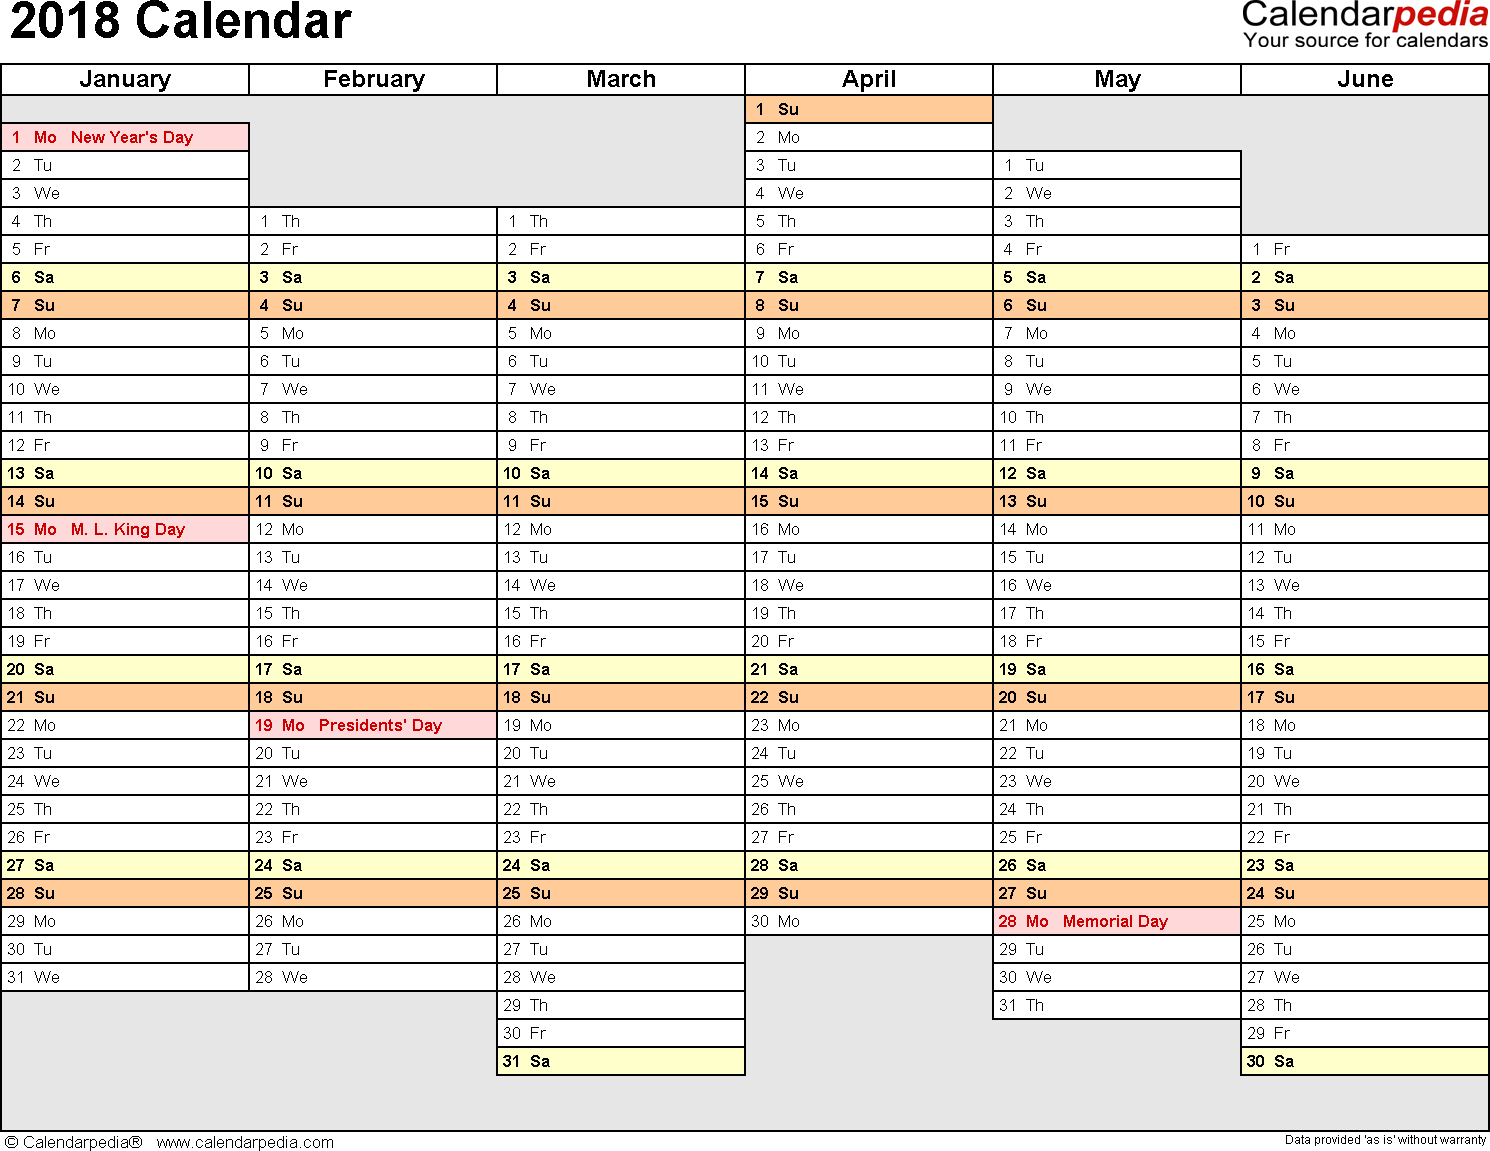 Template 6: 2018 Calendar for Word, months horizontally, 2 pages, days of the week in line/linear, landscape orientation